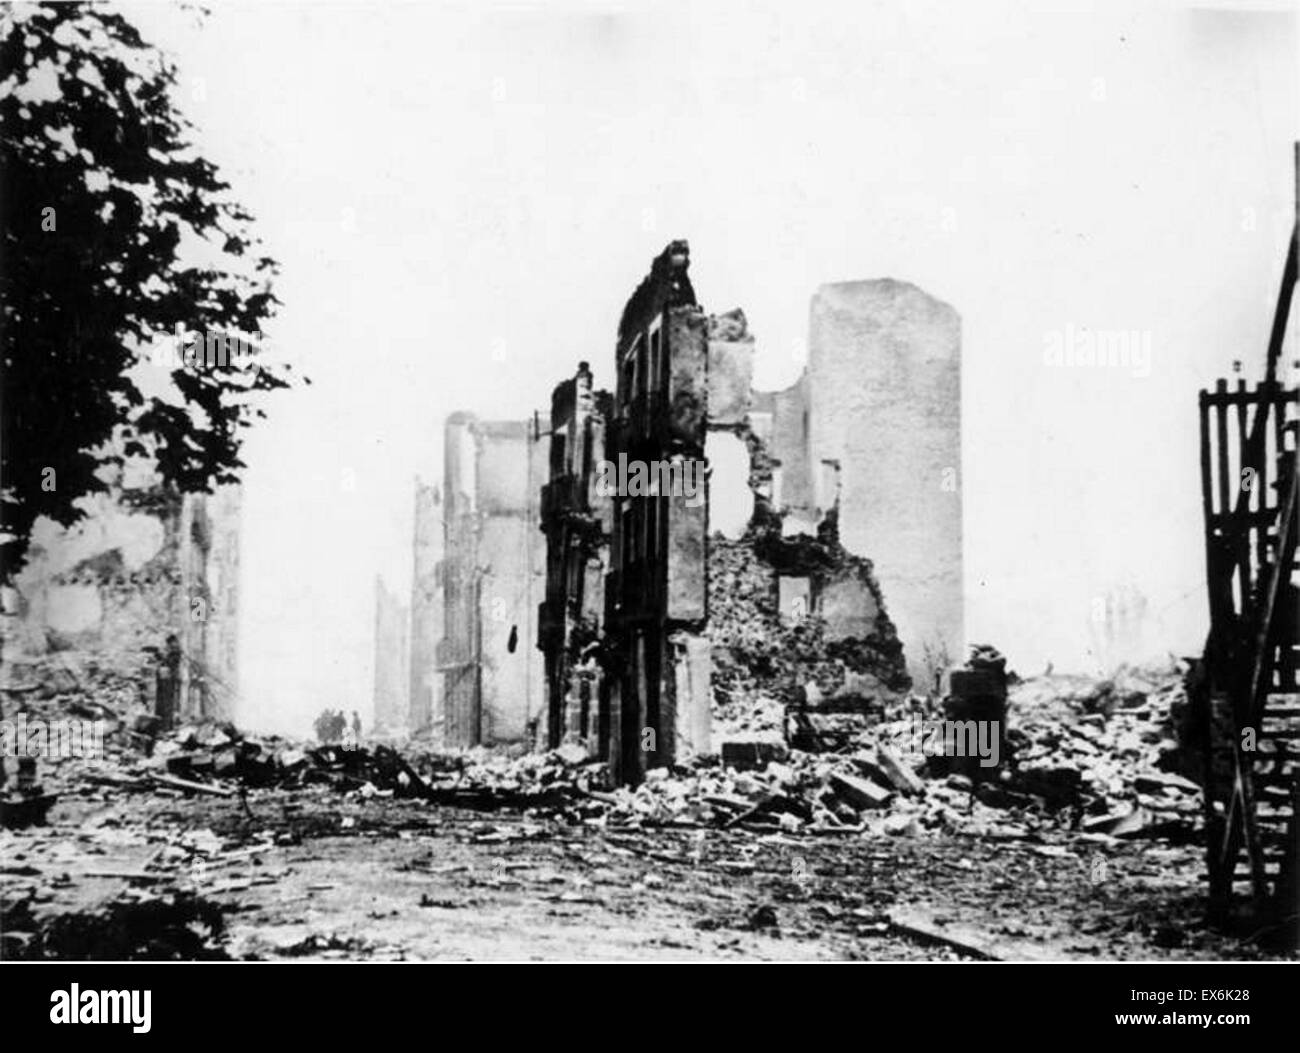 Spanish Civil War: The ruins of Guernica after bombing by the German Condor legion Aircraft 1937 - Stock Image